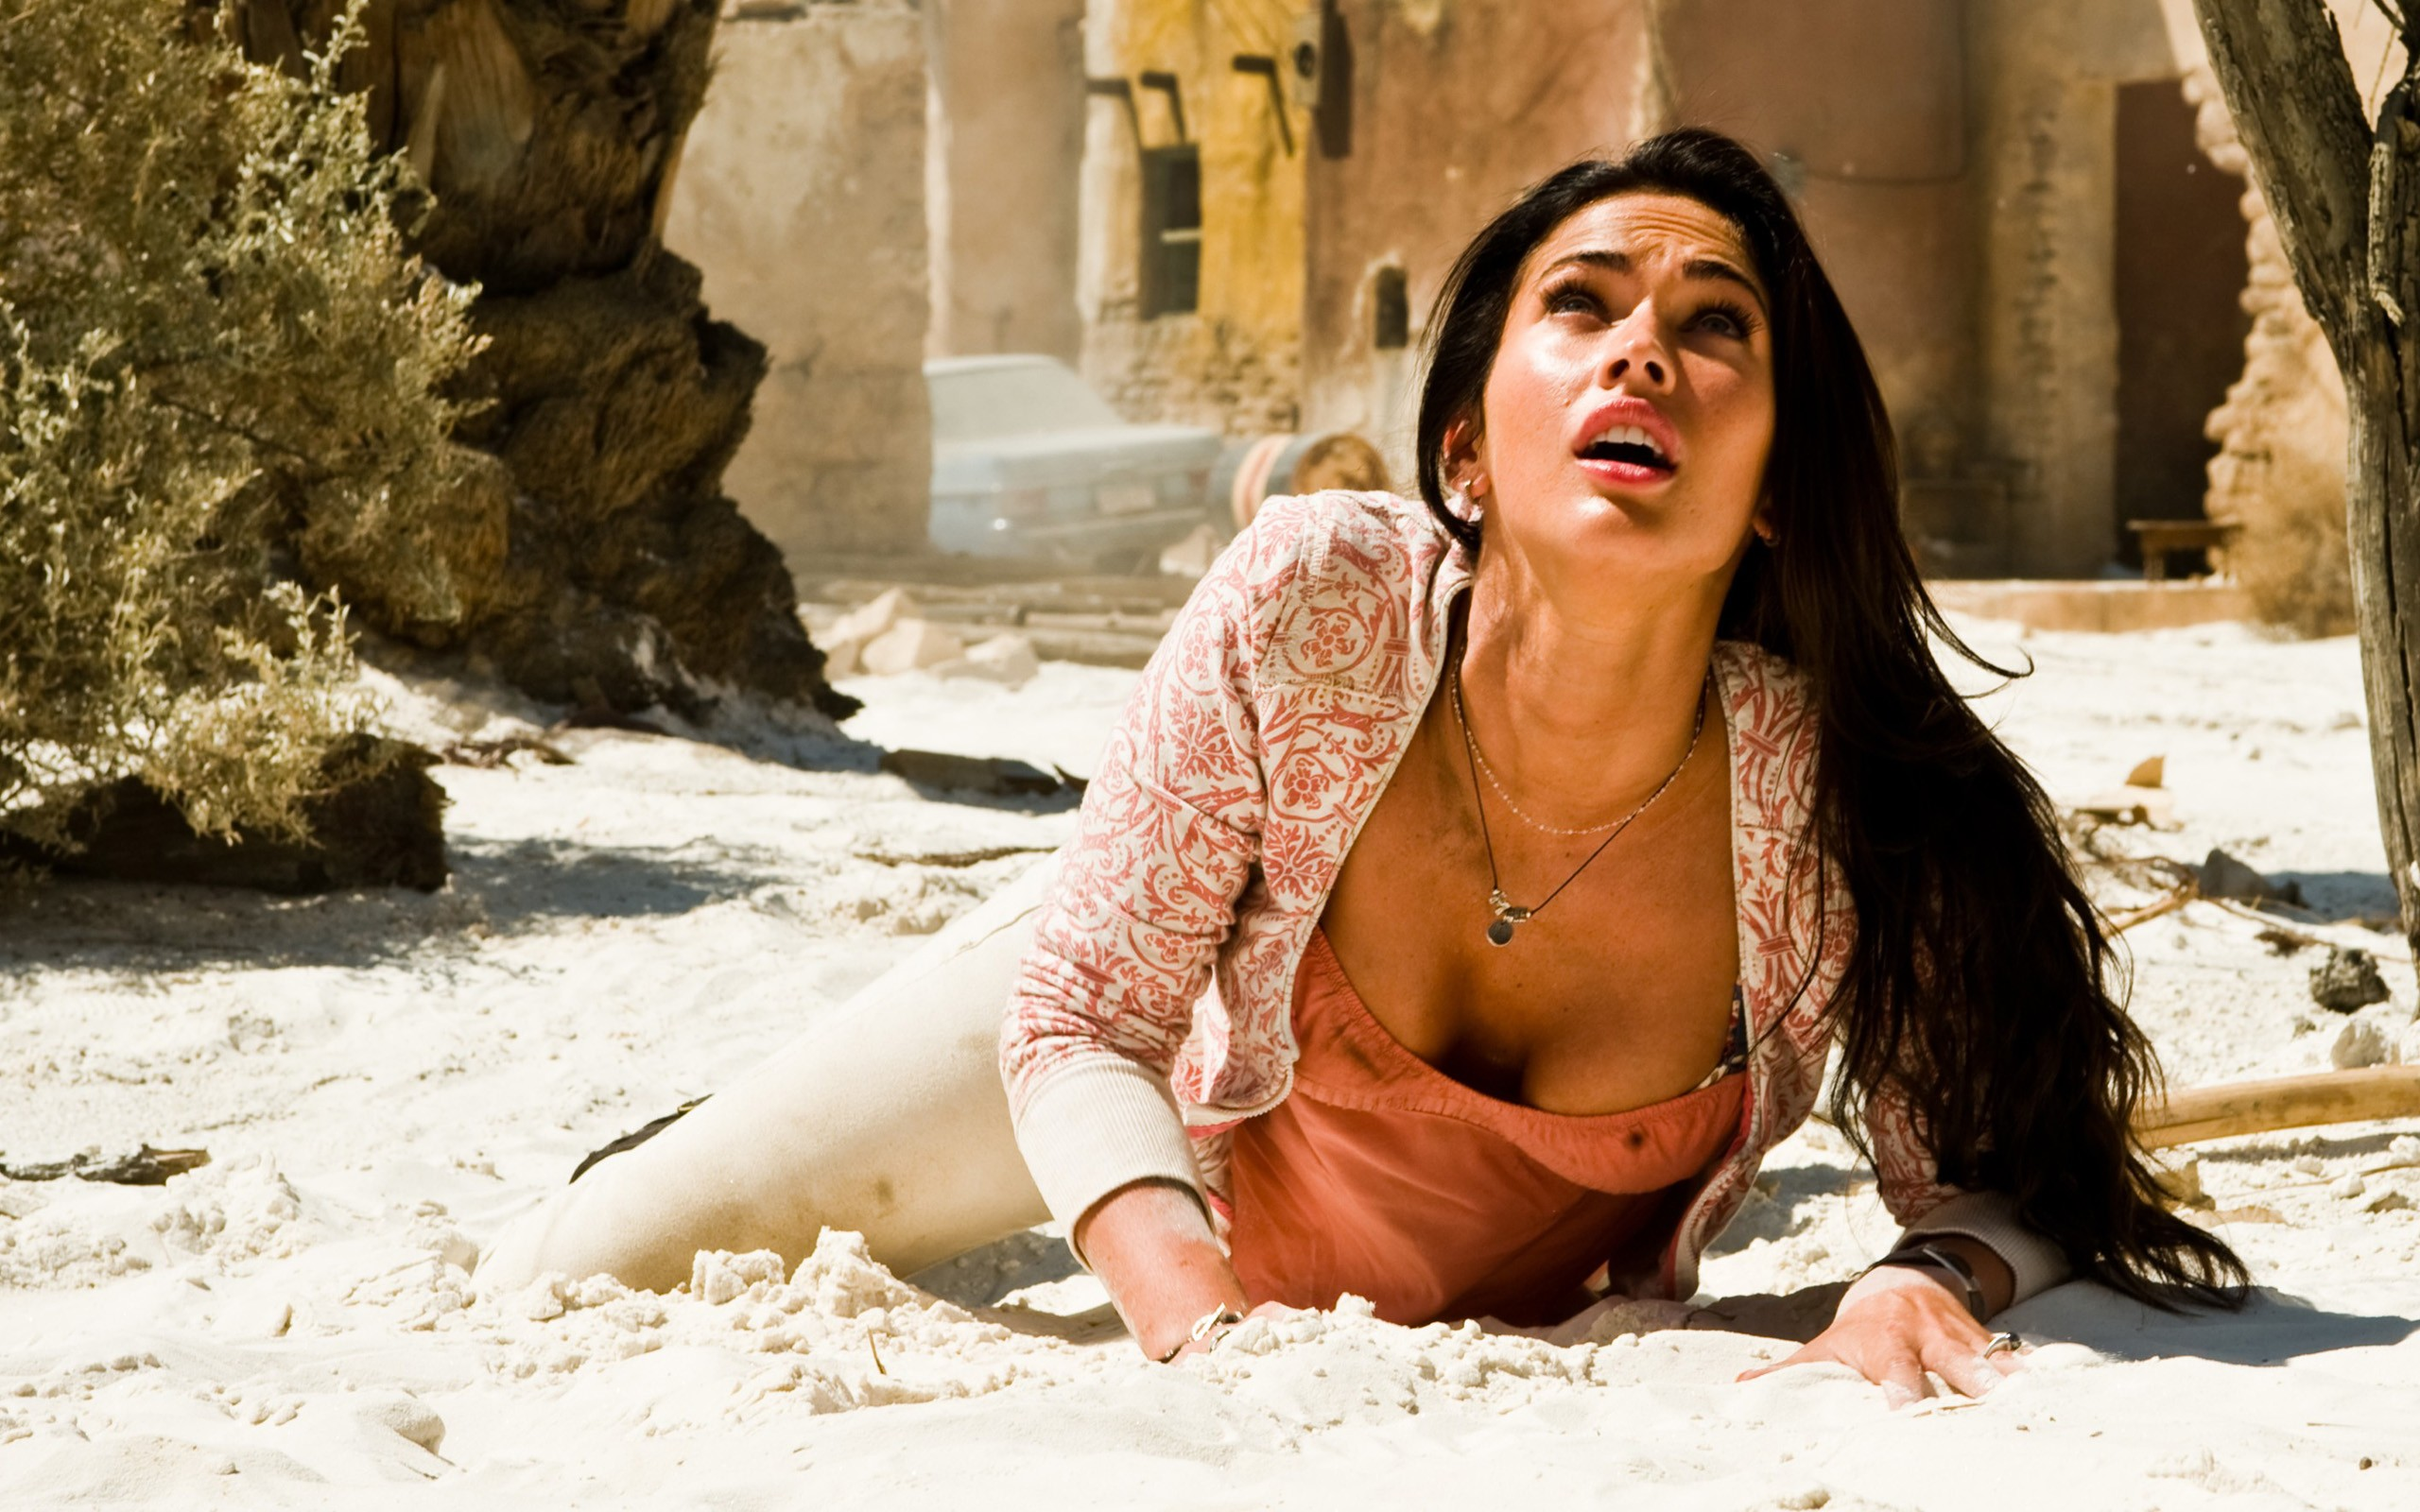 Transformers 2 Megan Fox On The Ground Wide